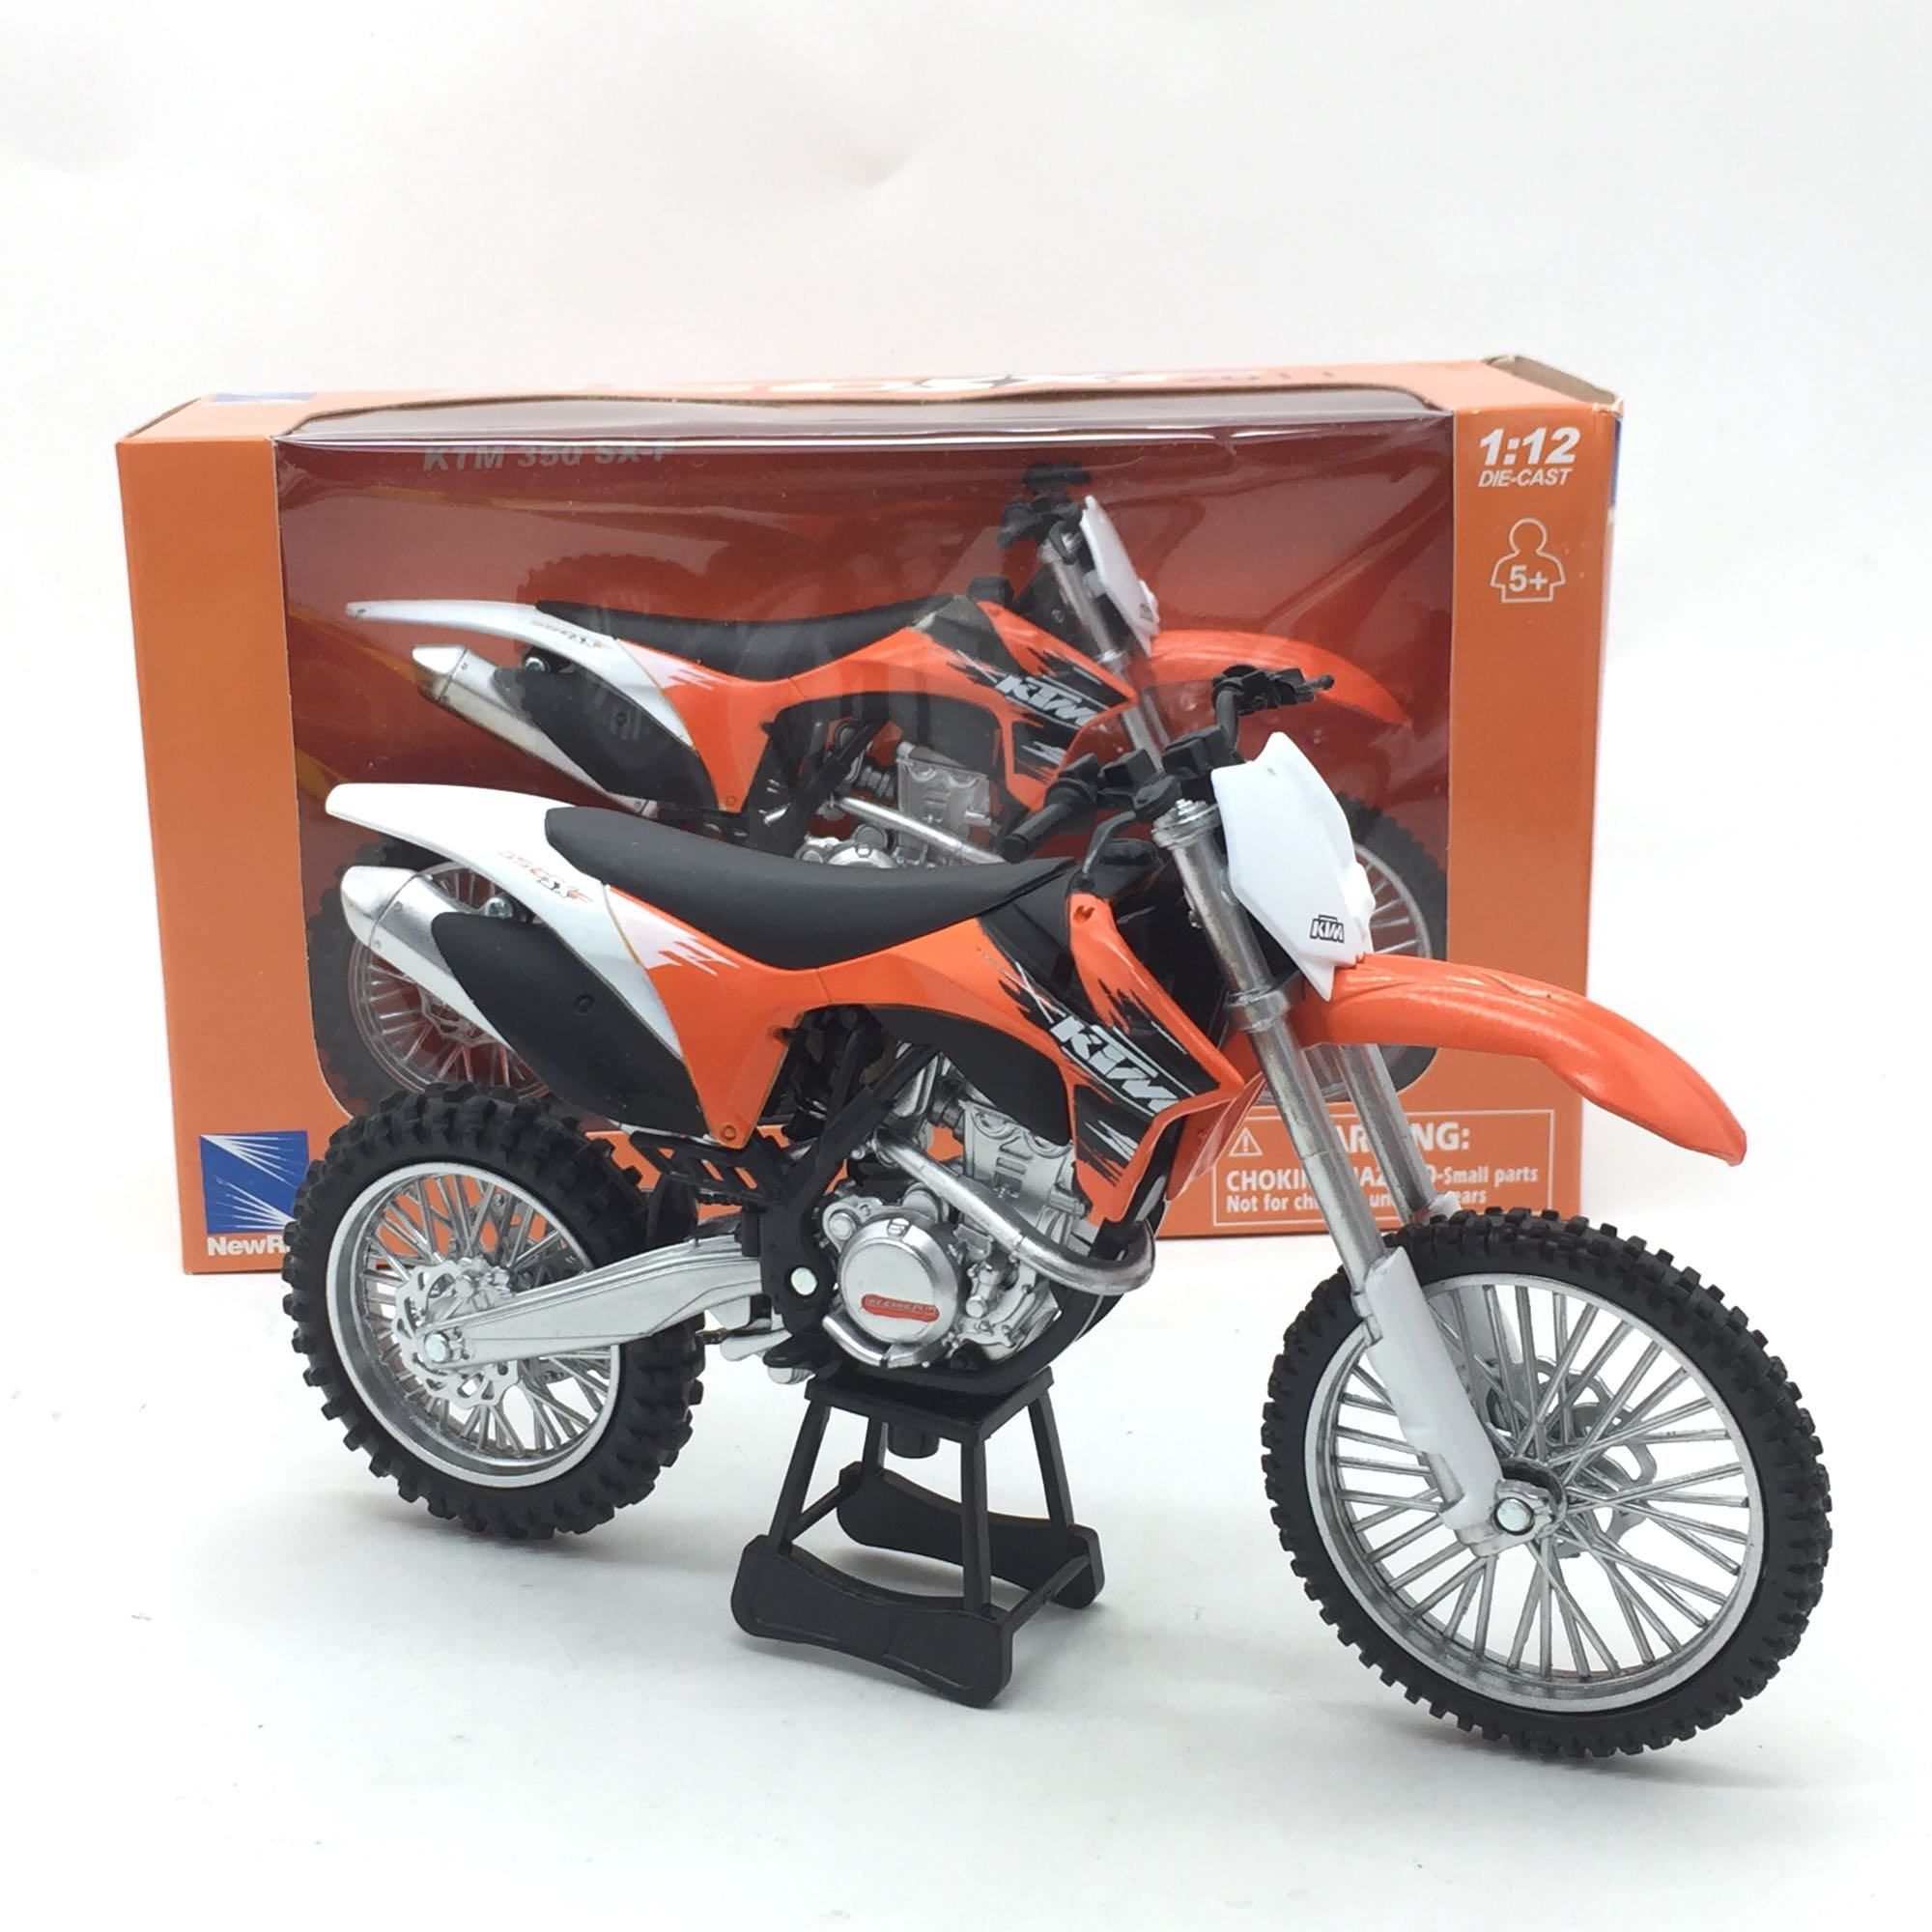 Simulation 1:12 KTM 350SX-F Off-road Motorcycle,die-cast Metal Model,collection Of Toy Car Models,exquisite Gifts Free Shipping